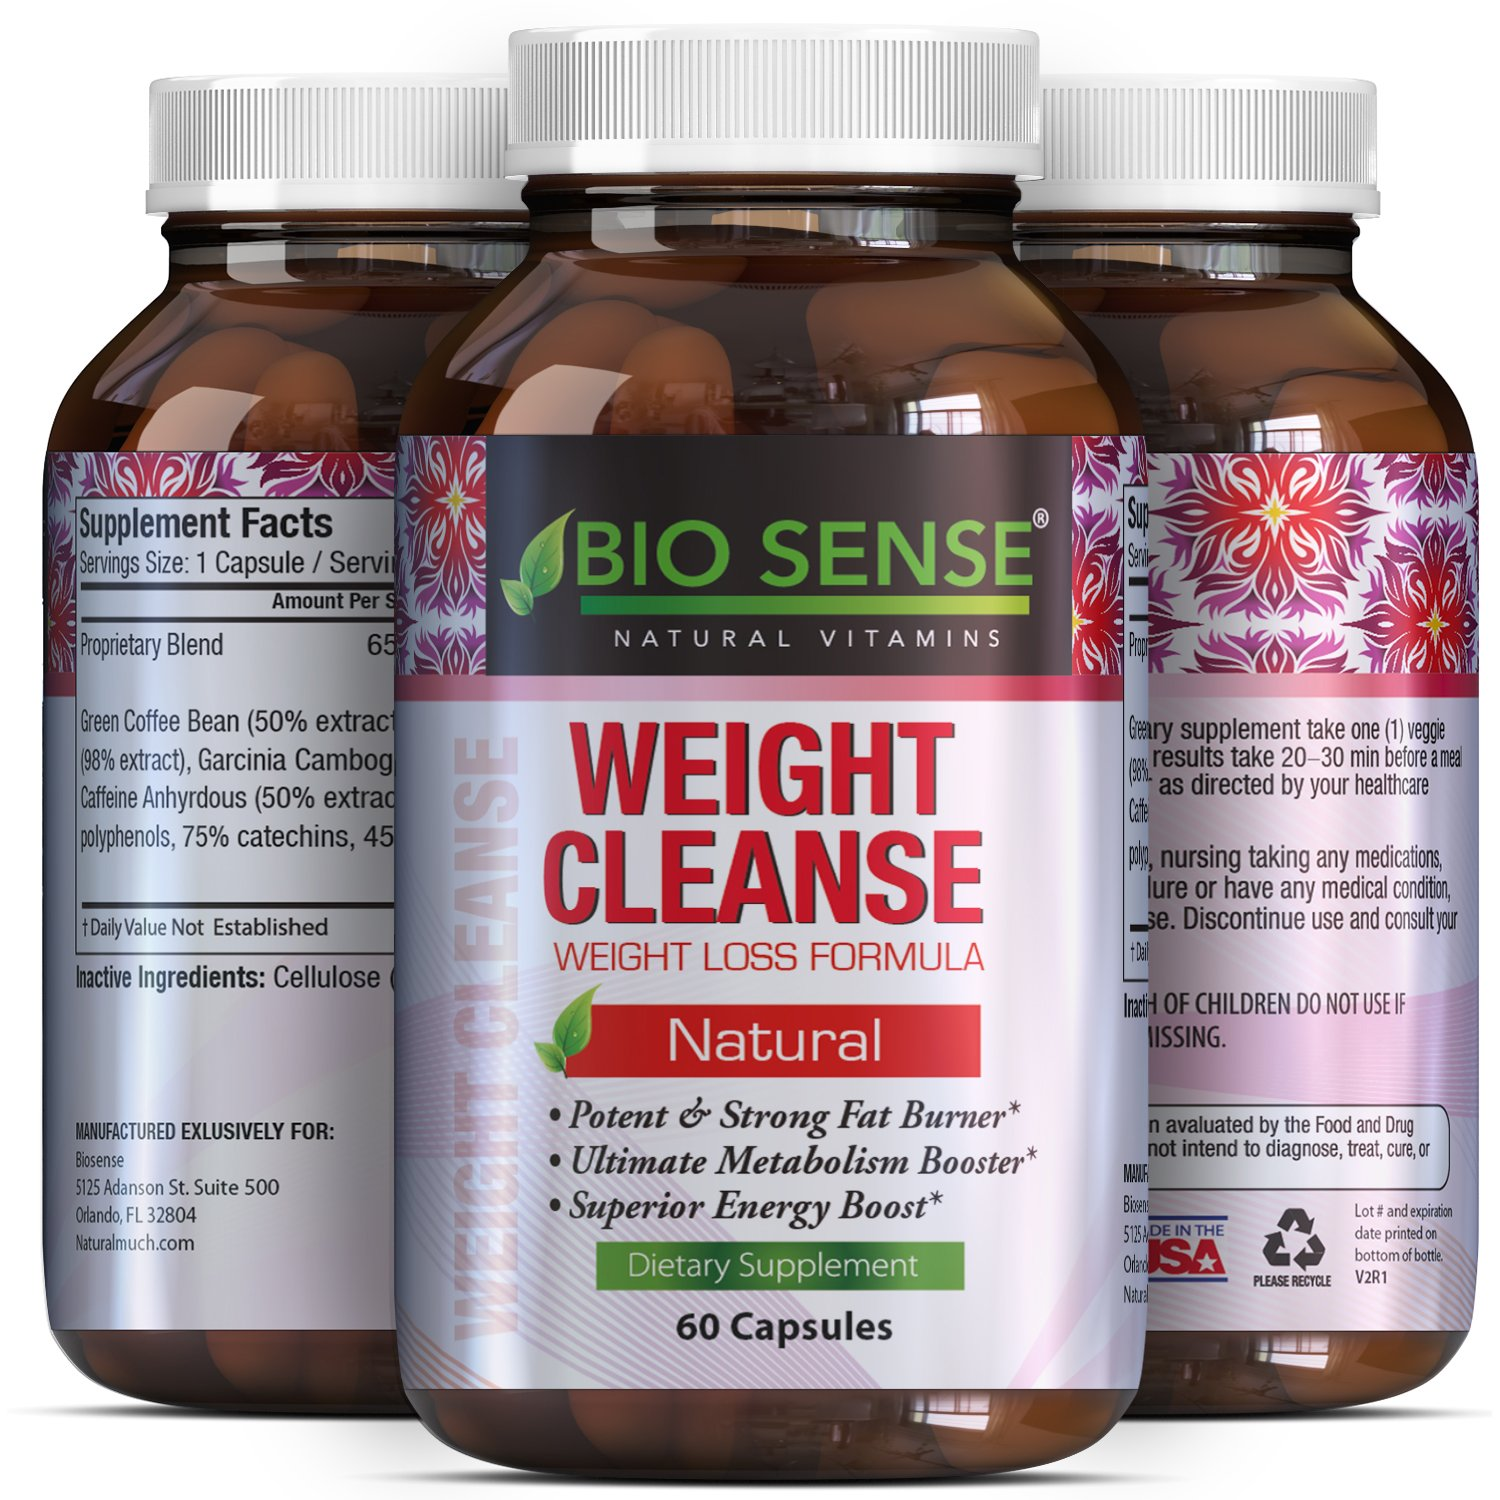 New Pure Garcinia Cambogia, Green Coffee Bean and Raspberry Ketones Complex with Green Tea and Keto Fat Burner Diet Pills Weight Loss Formula Highest Grade Pure Blend  (60 Capsules) by Bio Sense